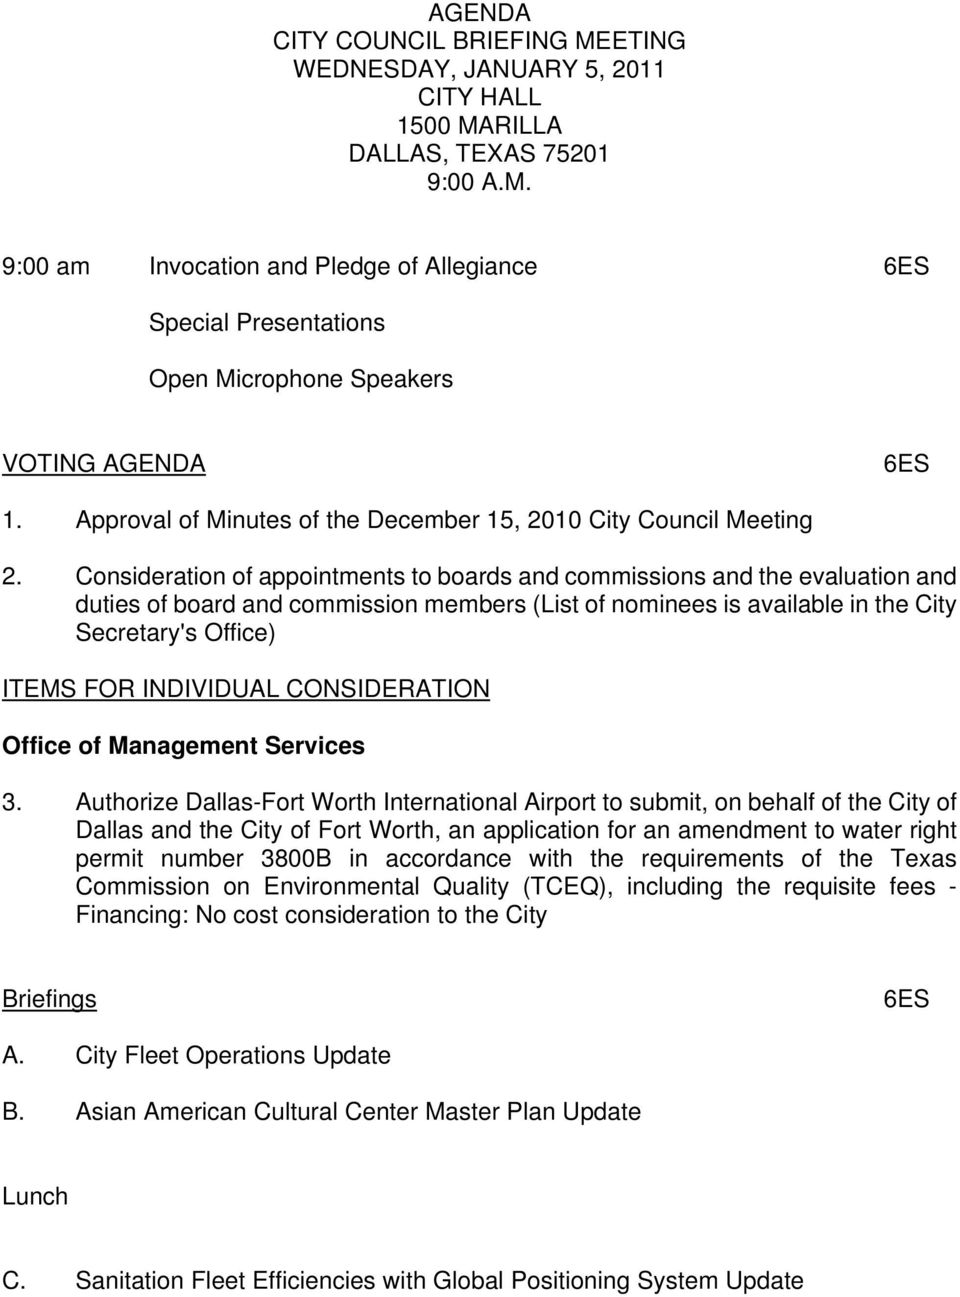 Consideration of appointments to boards and commissions and the evaluation and duties of board and commission members (List of nominees is available in the City Secretary's Office) ITEMS FOR